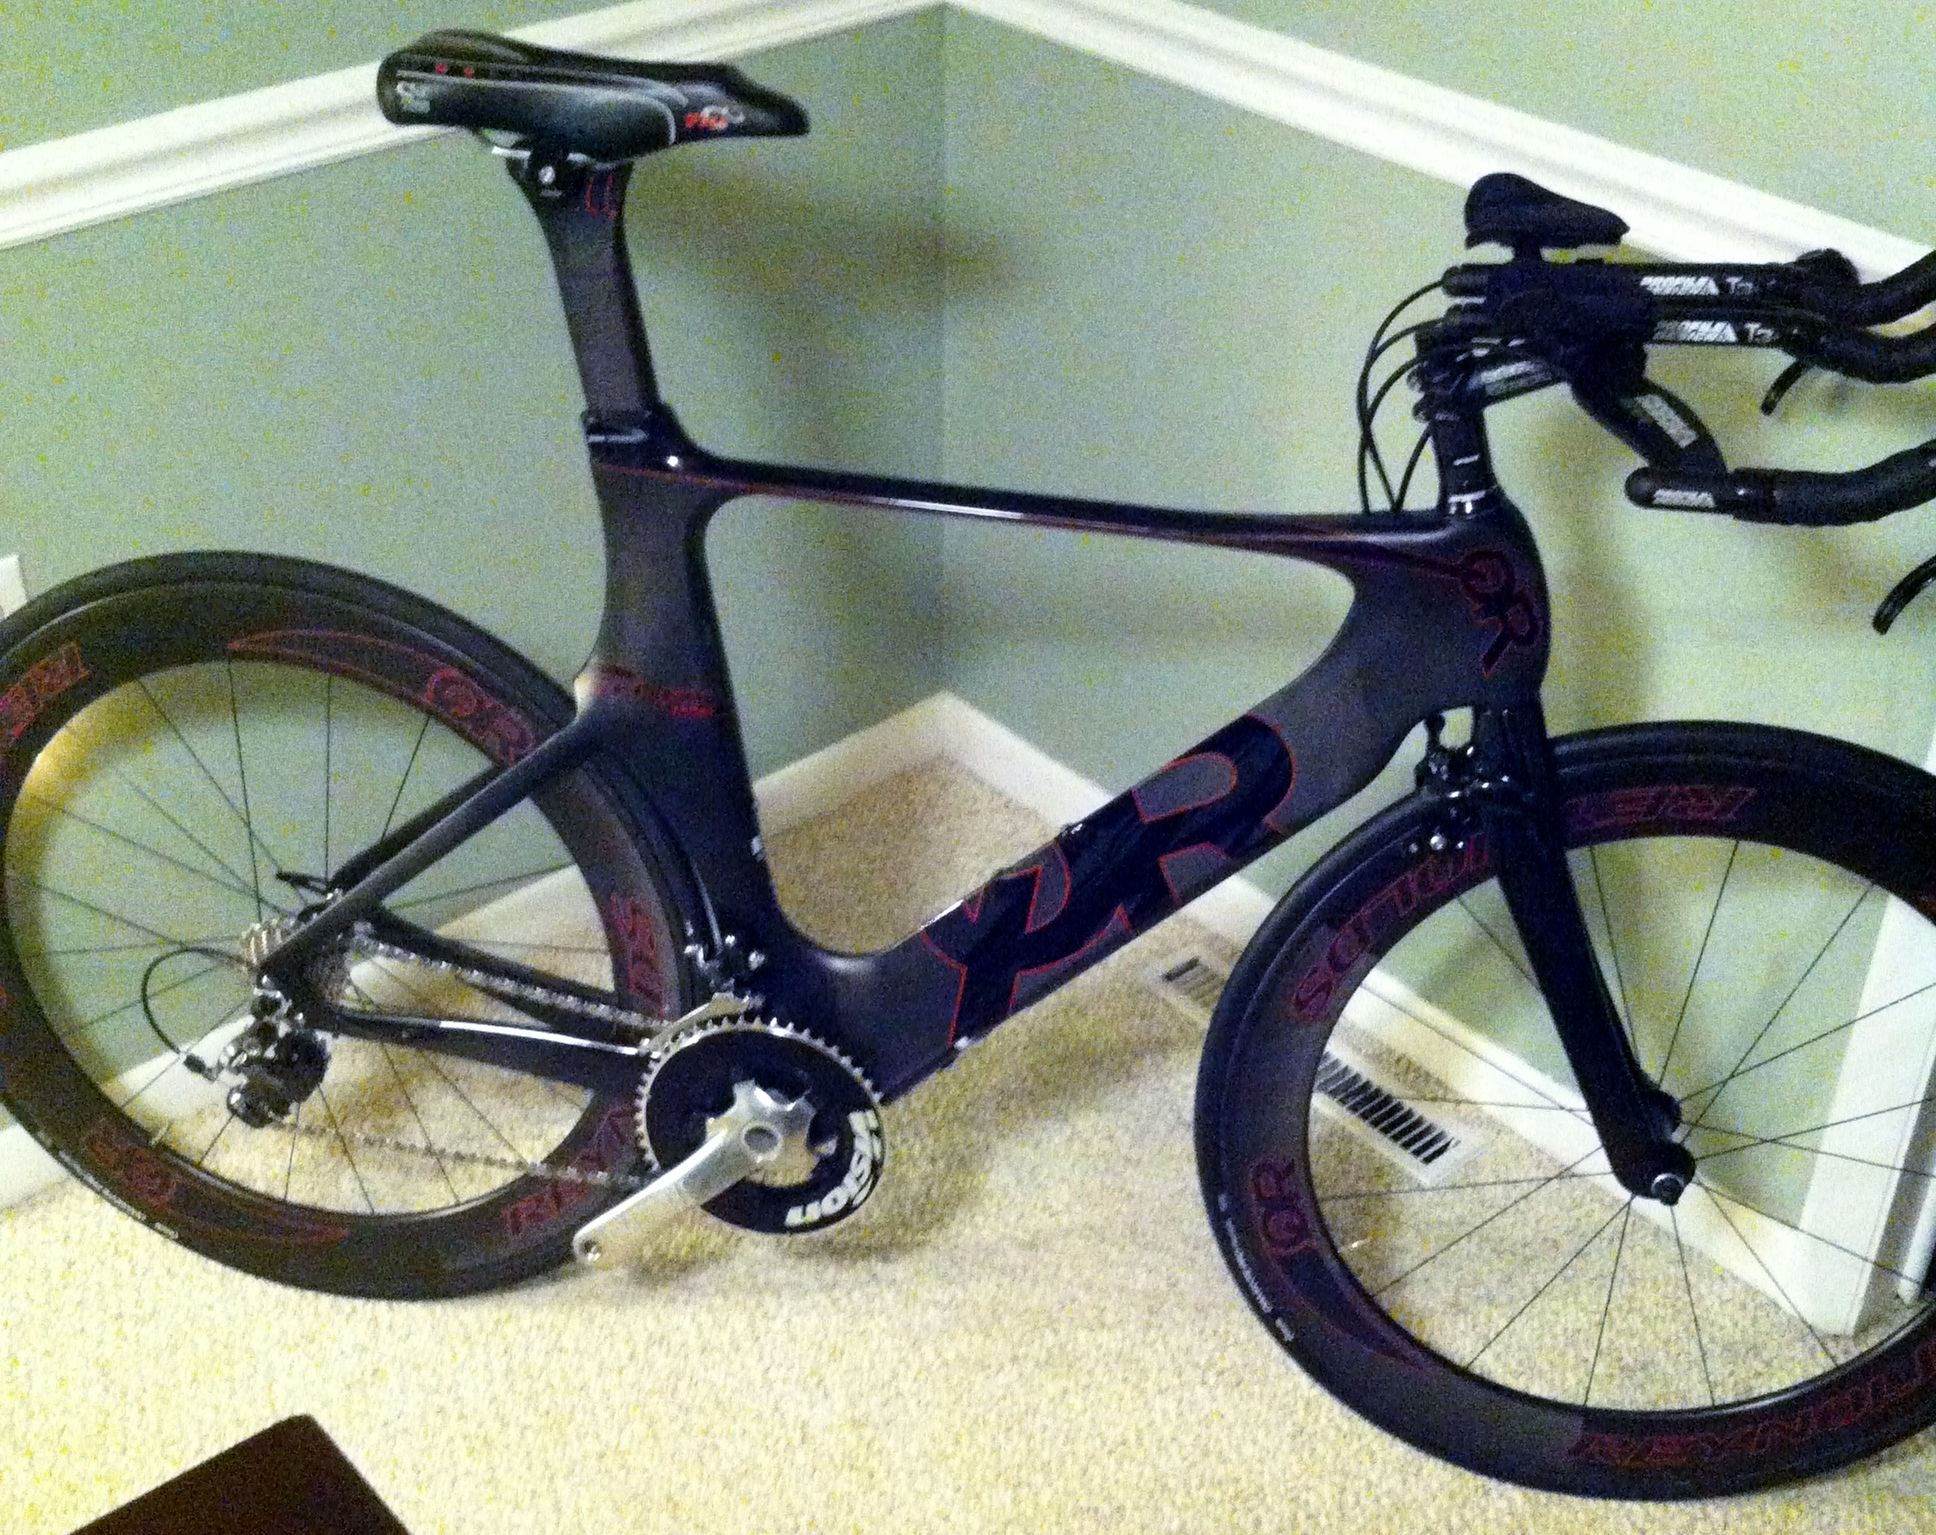 My Race Bike For 2014 Quintana Roo Cd0 1 Equipped With Reynolds